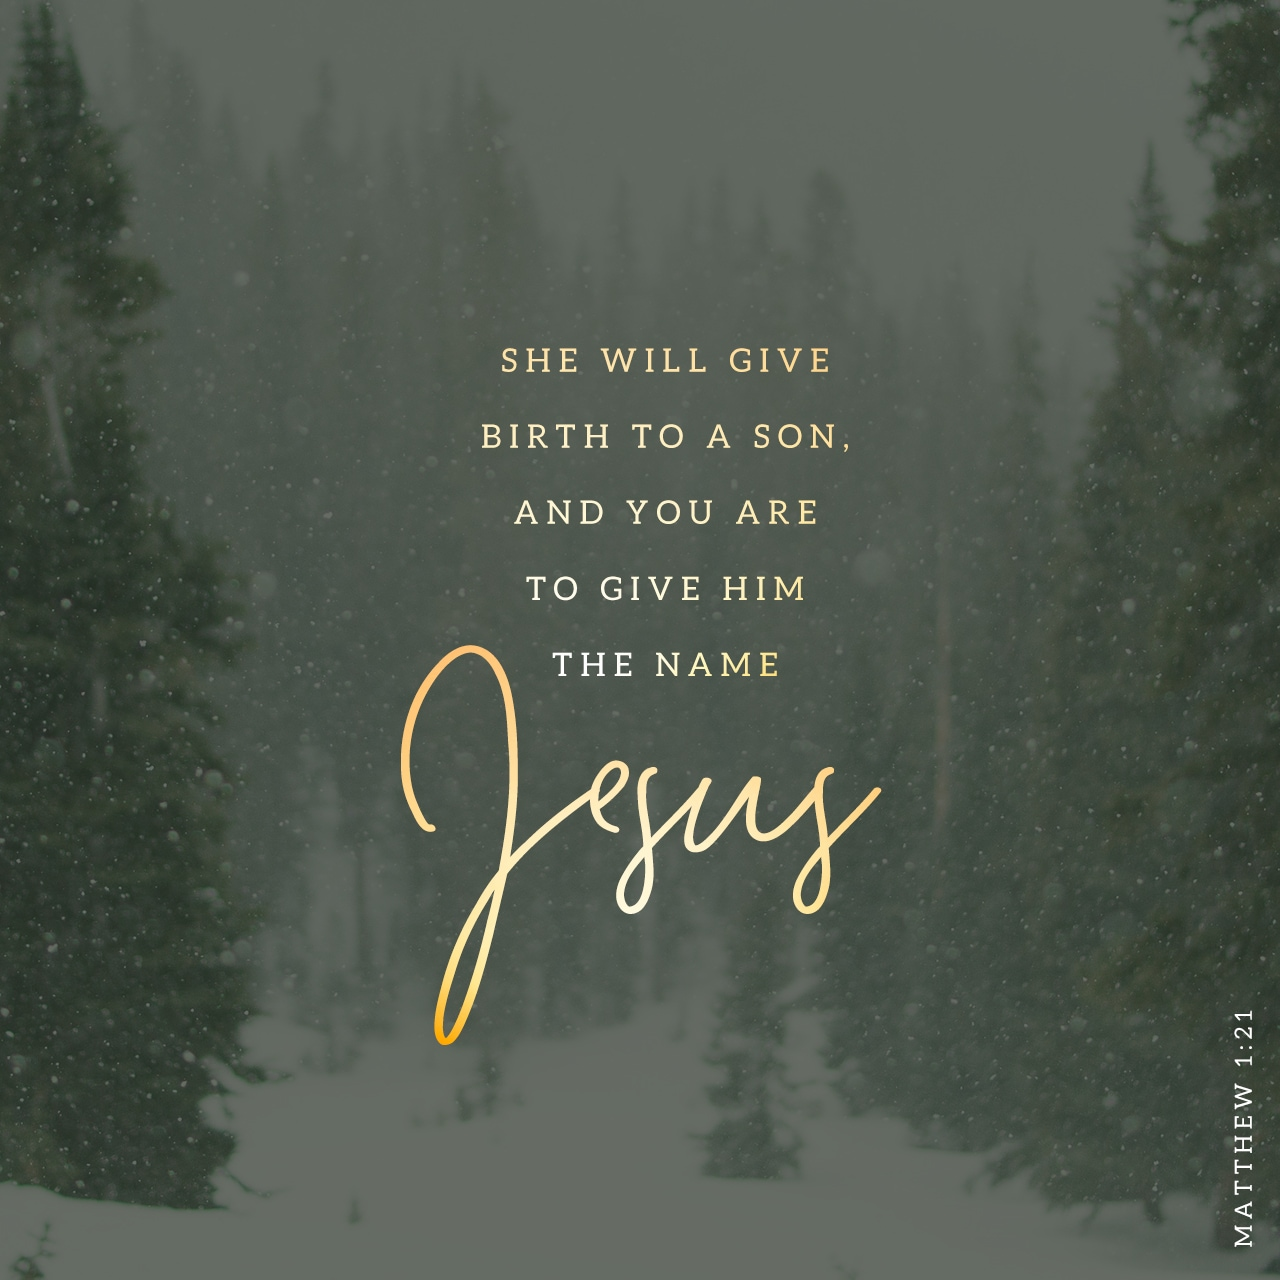 ⭐ Merry Christmas from YouVersion. - YouVersion